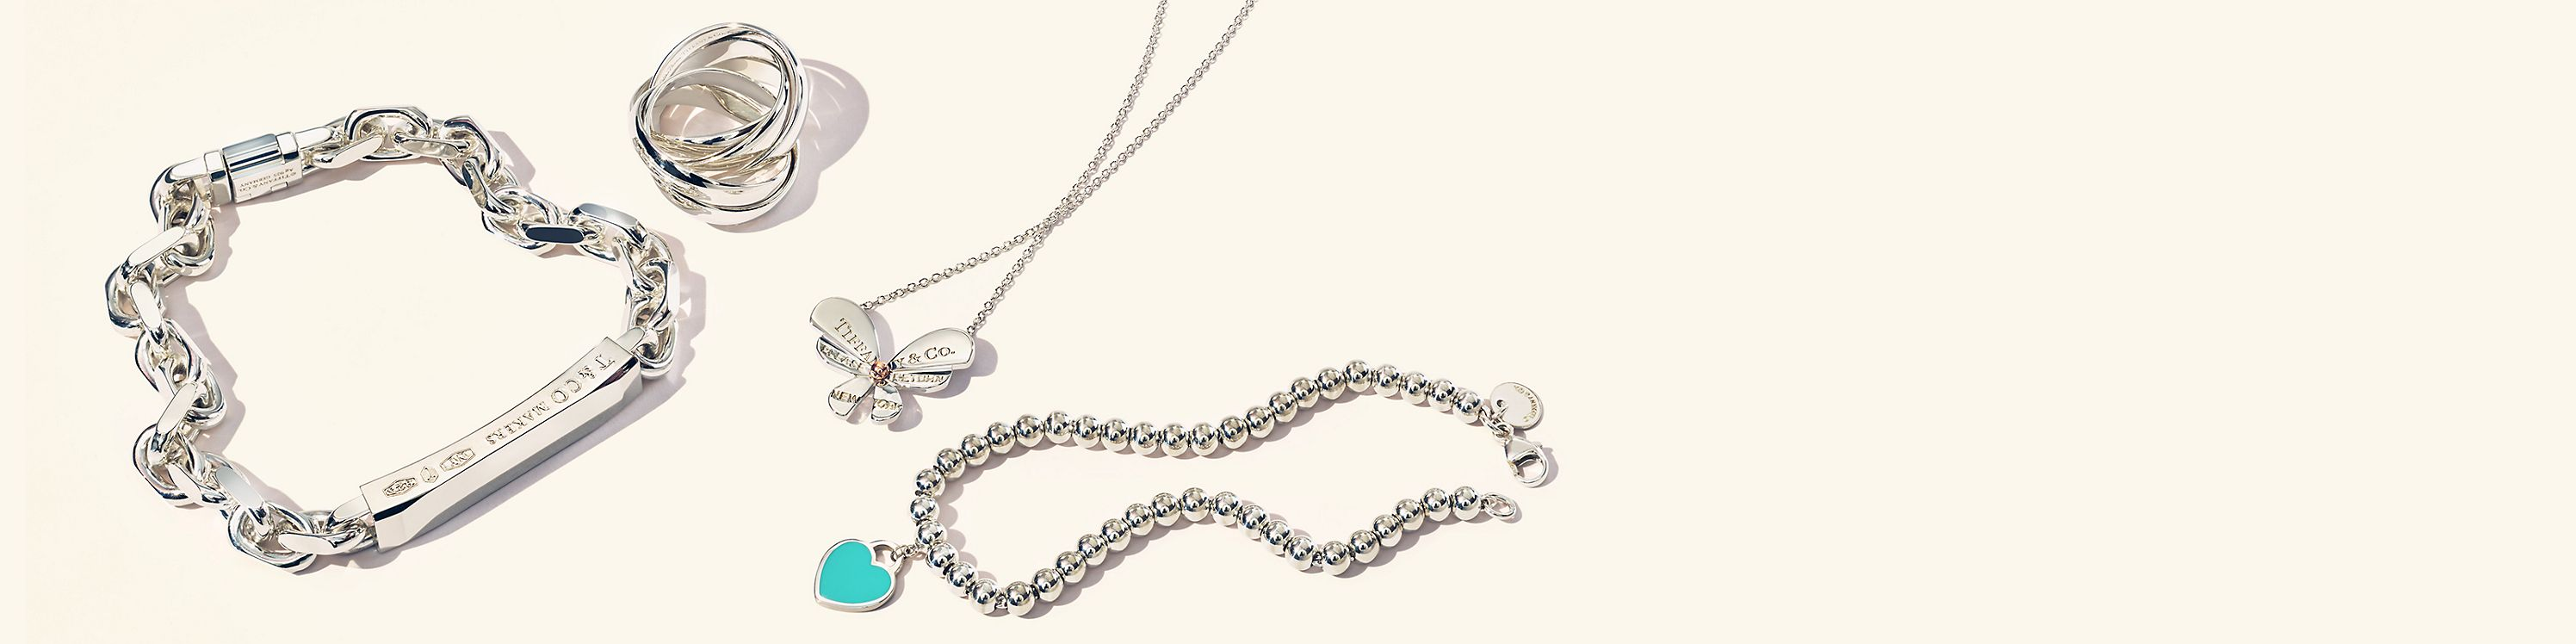 Tiffany & Co. Schmuck in Sterlingsilber